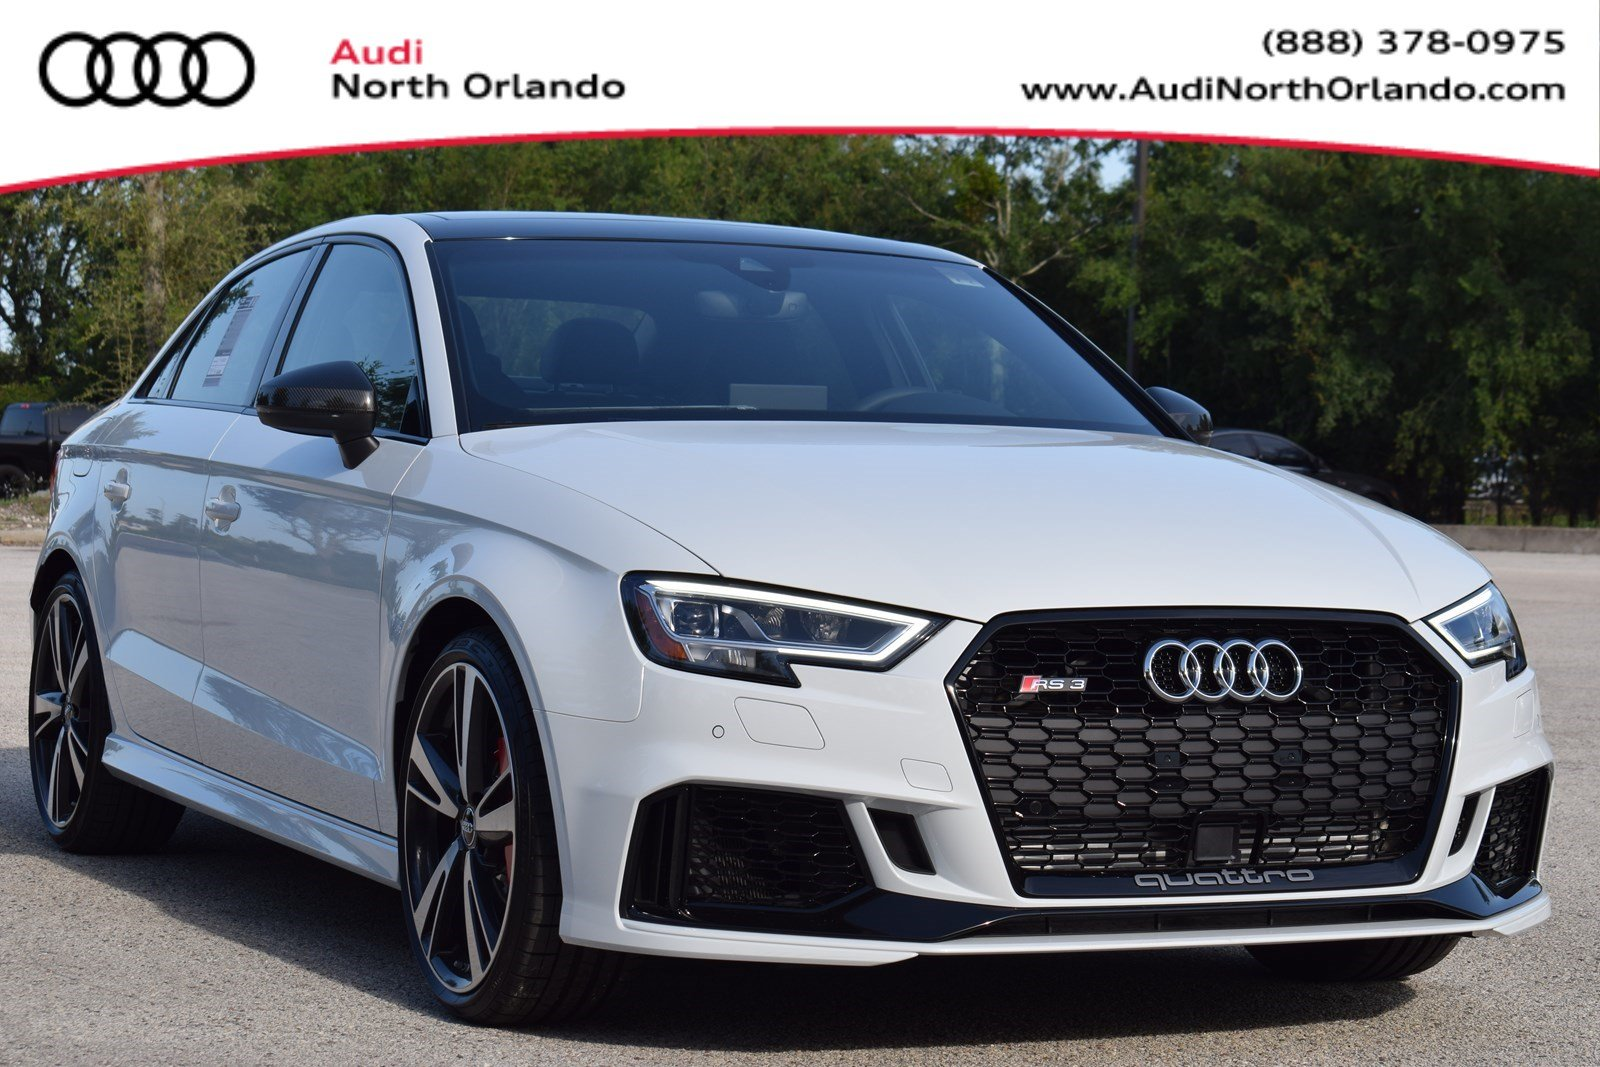 Featured new 2019 Audi RS 3 2.5T Sedan for sale in Sanford, FL, near Orlando, FL.